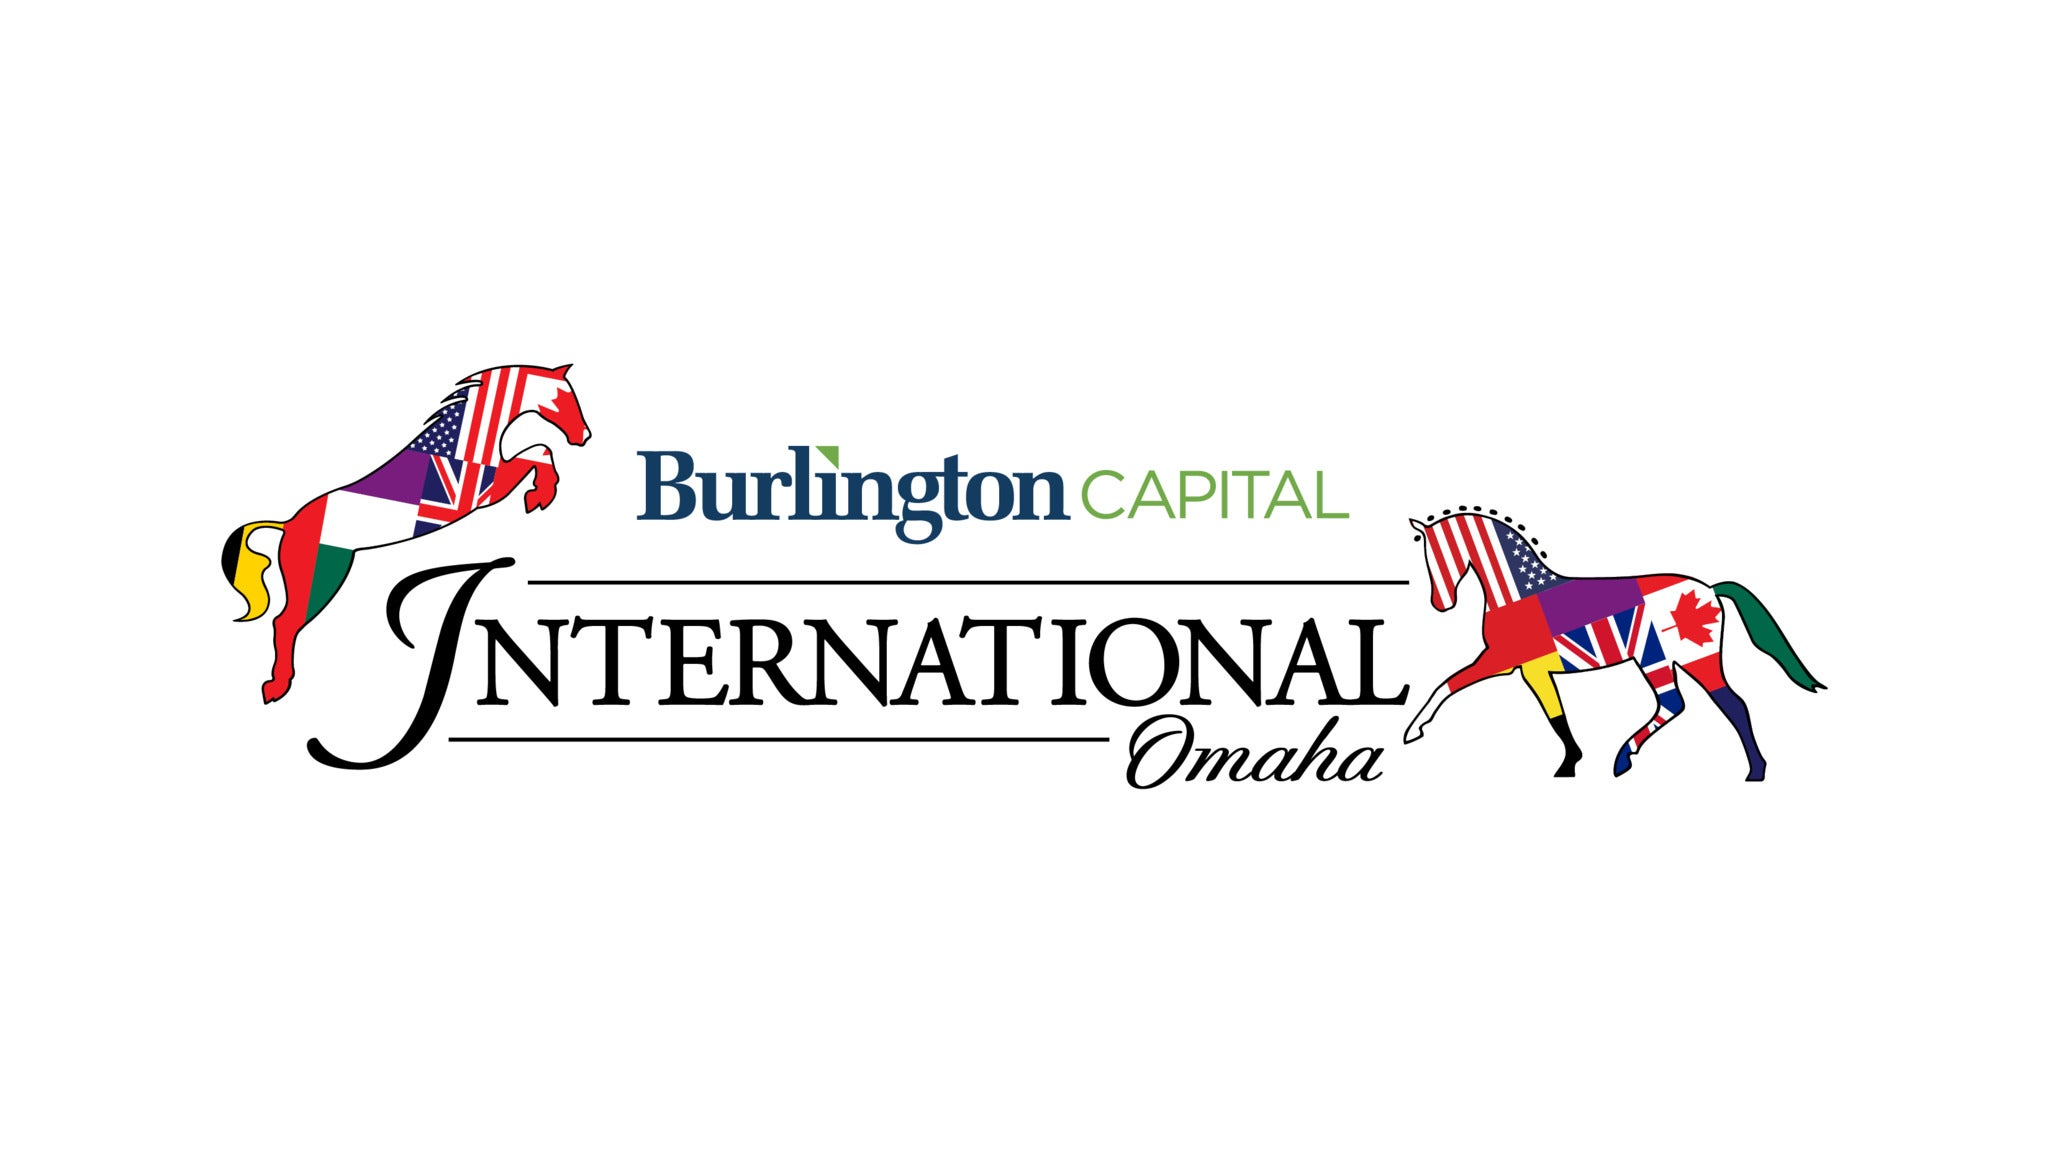 Burlington Capital International Omaha Dressage Freestyle